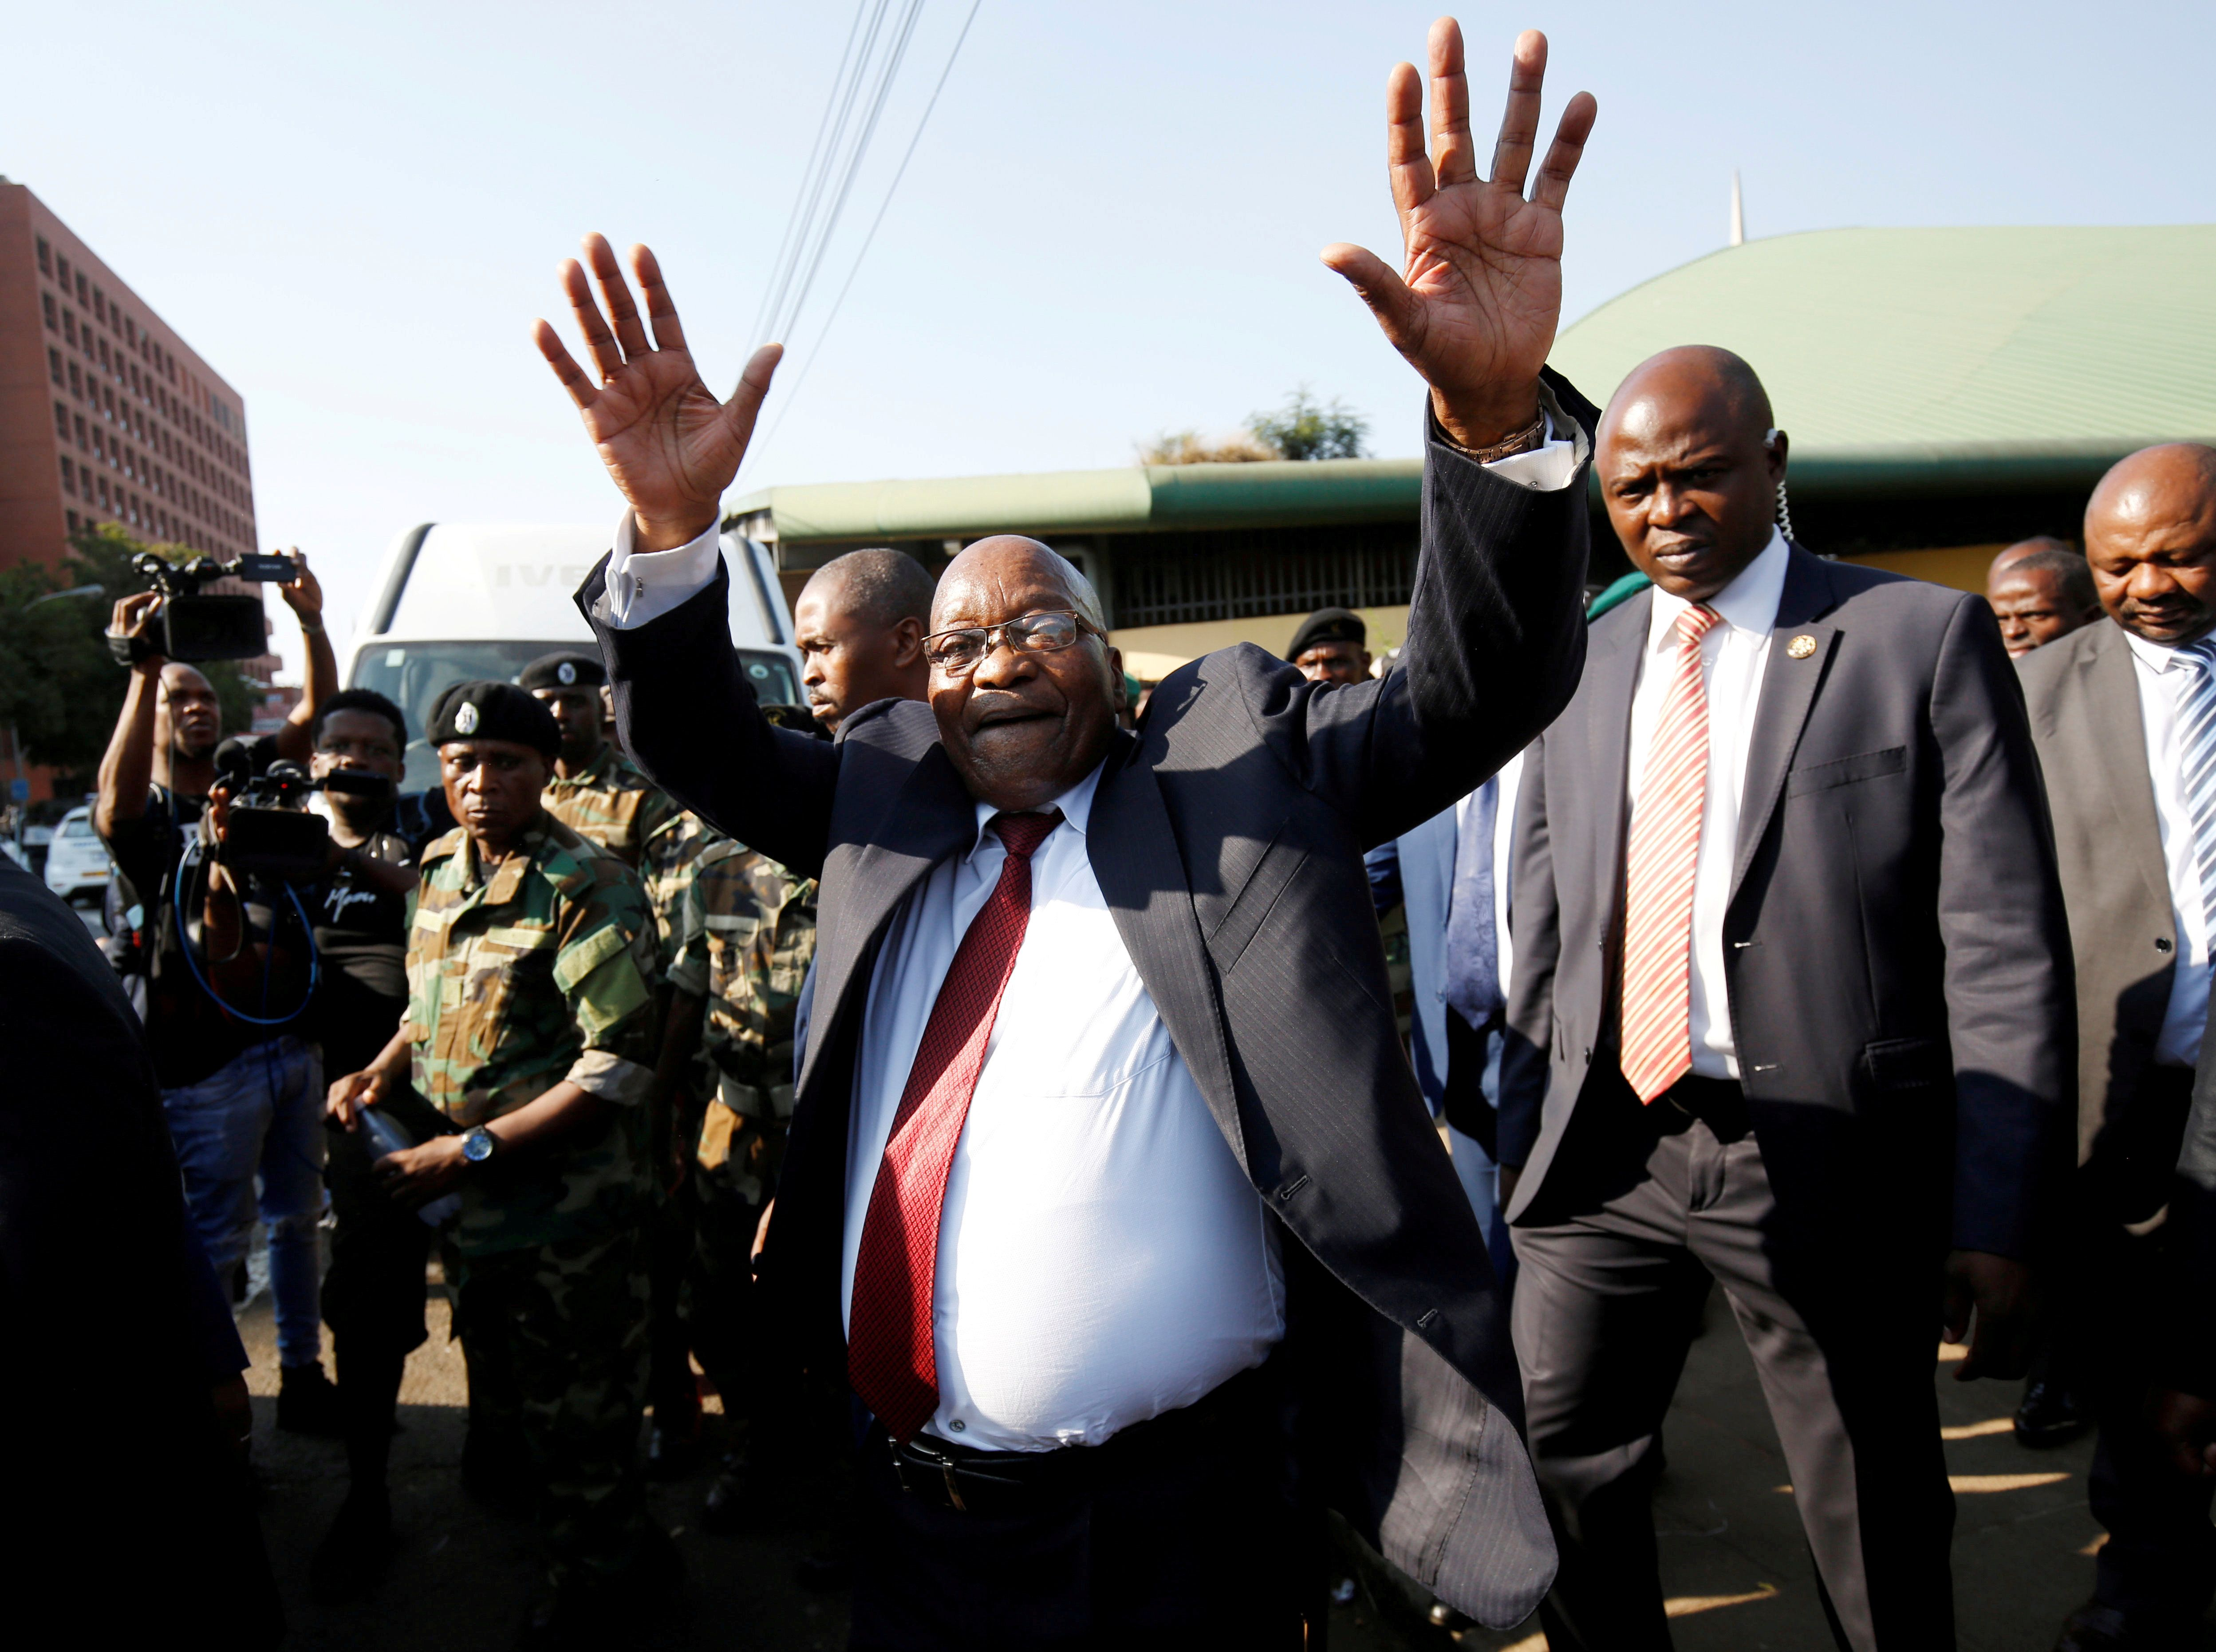 What We're Watching: Zuma in court, Ebola in the big city, and Italian neo-nazis